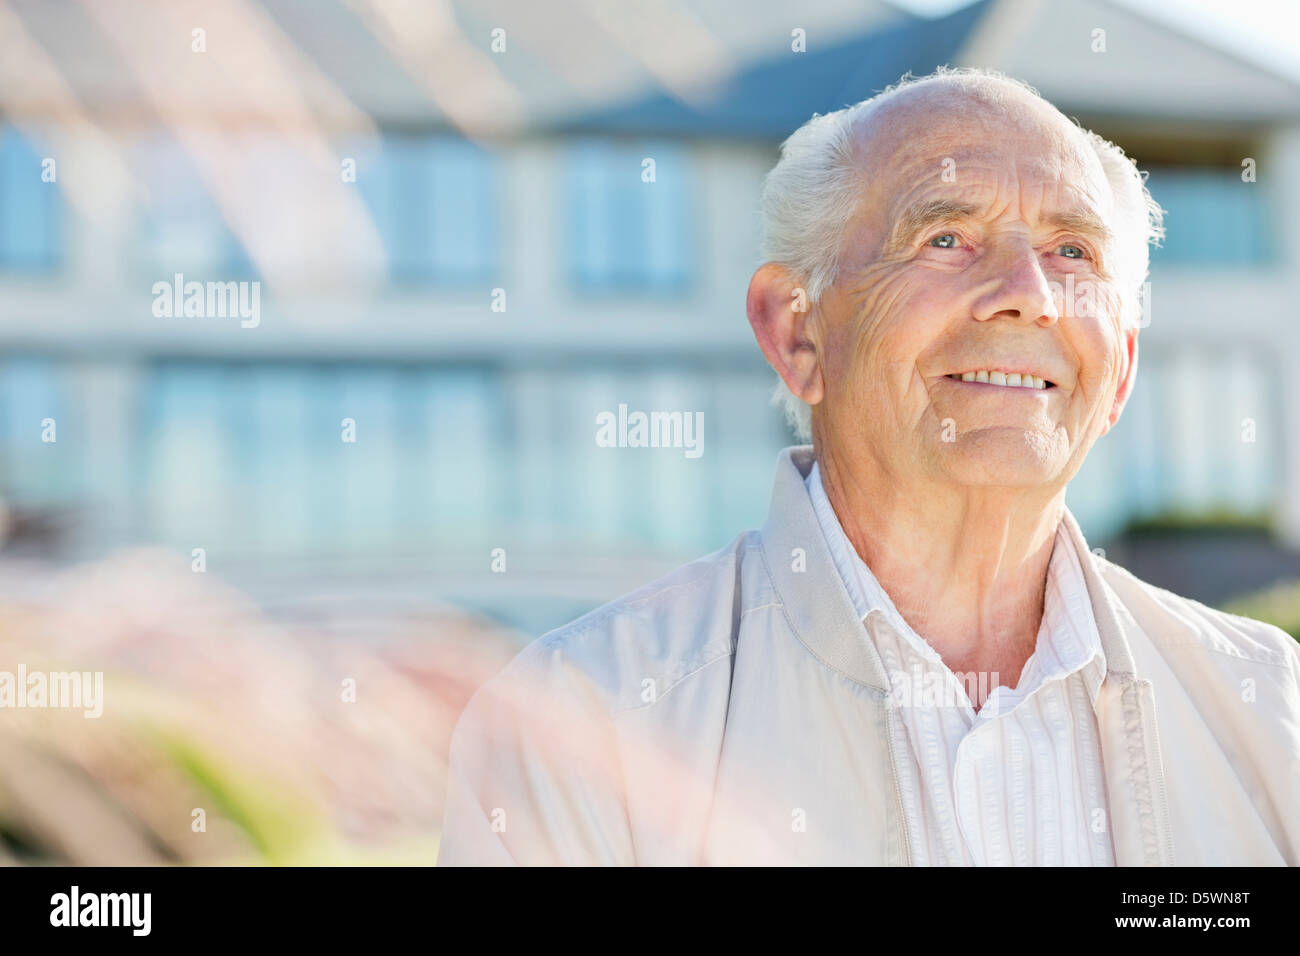 Smiling older man standing outdoors - Stock Image